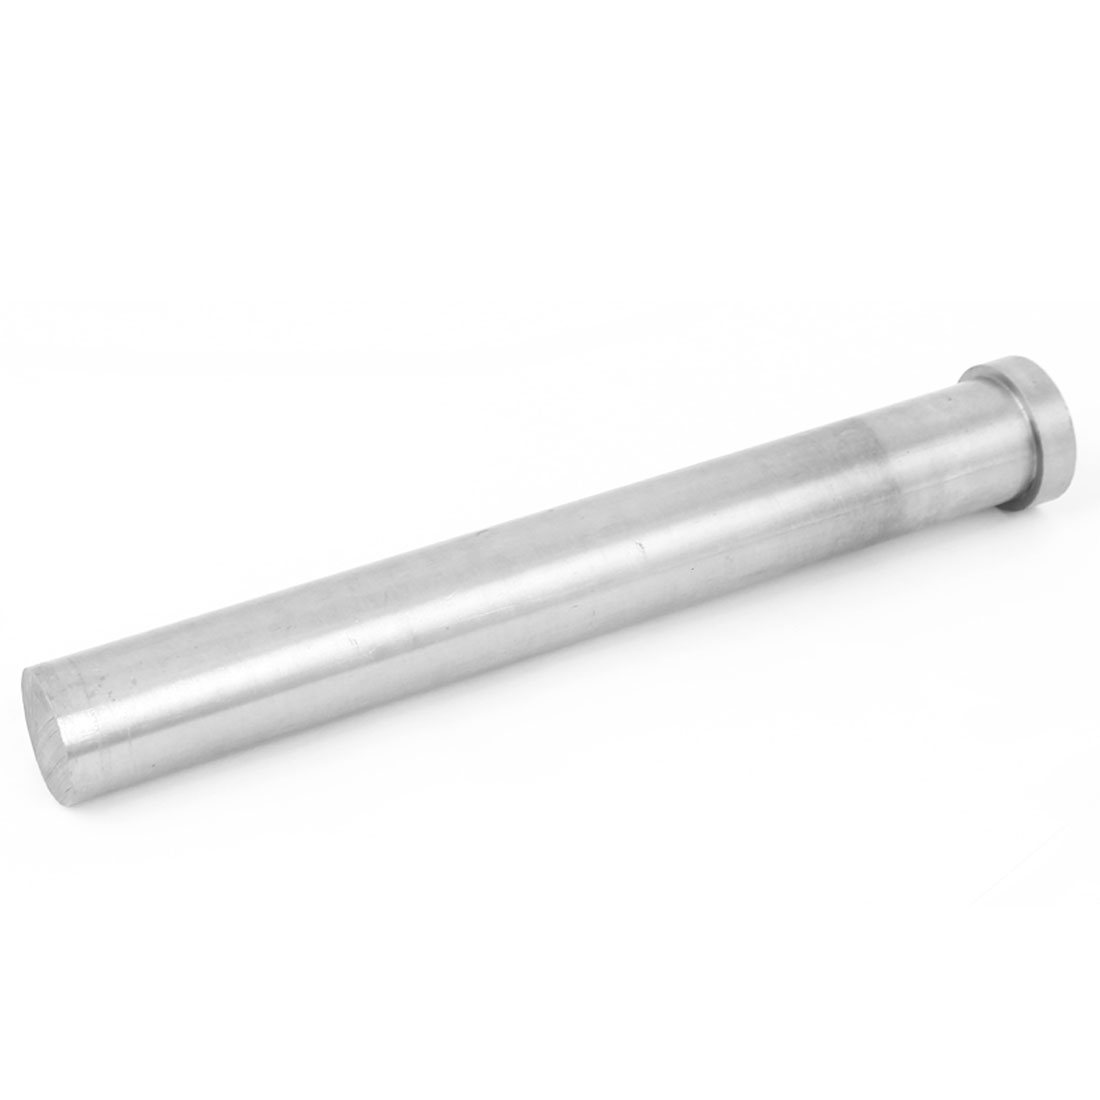 25mm Diameter Round Tip Steel Straight Ejector Pin Punch 200mm Long Silver Gray